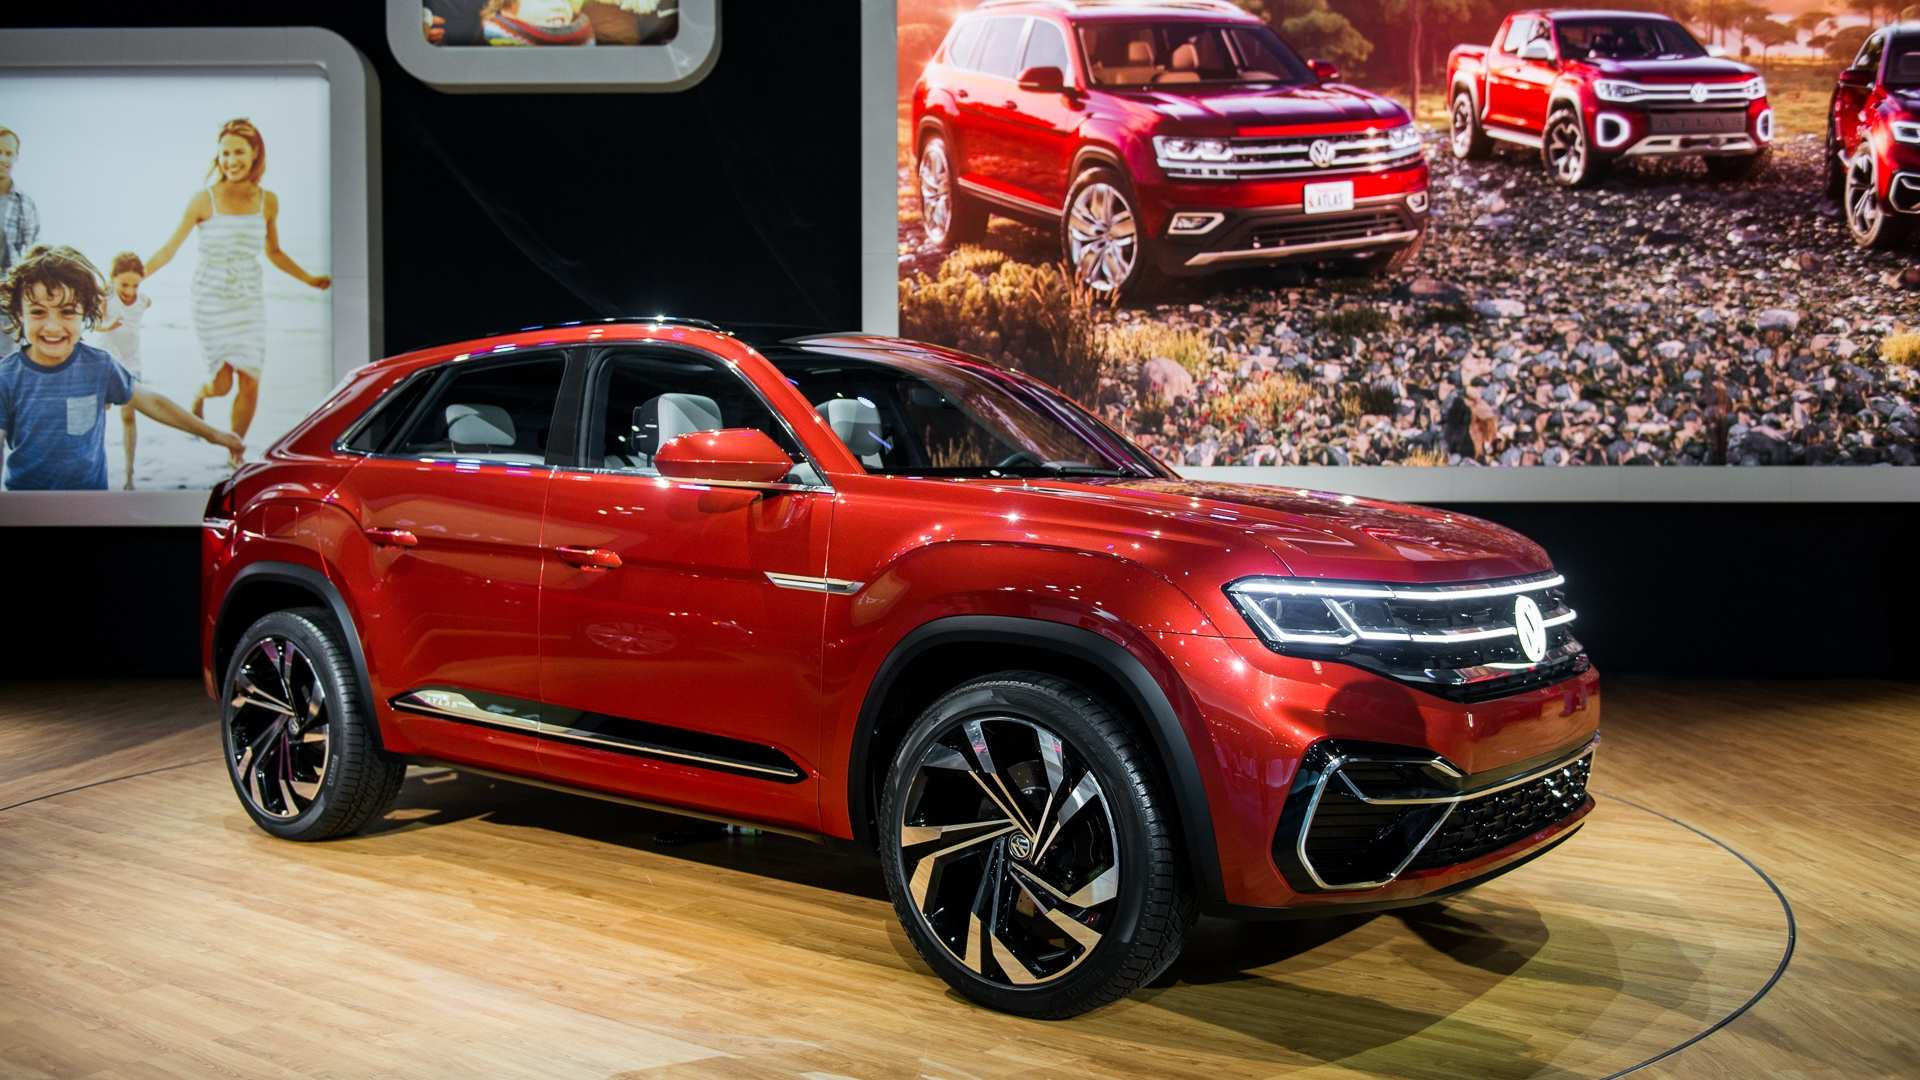 33 New Volkswagen Atlas 2020 Price Picture for Volkswagen Atlas 2020 Price